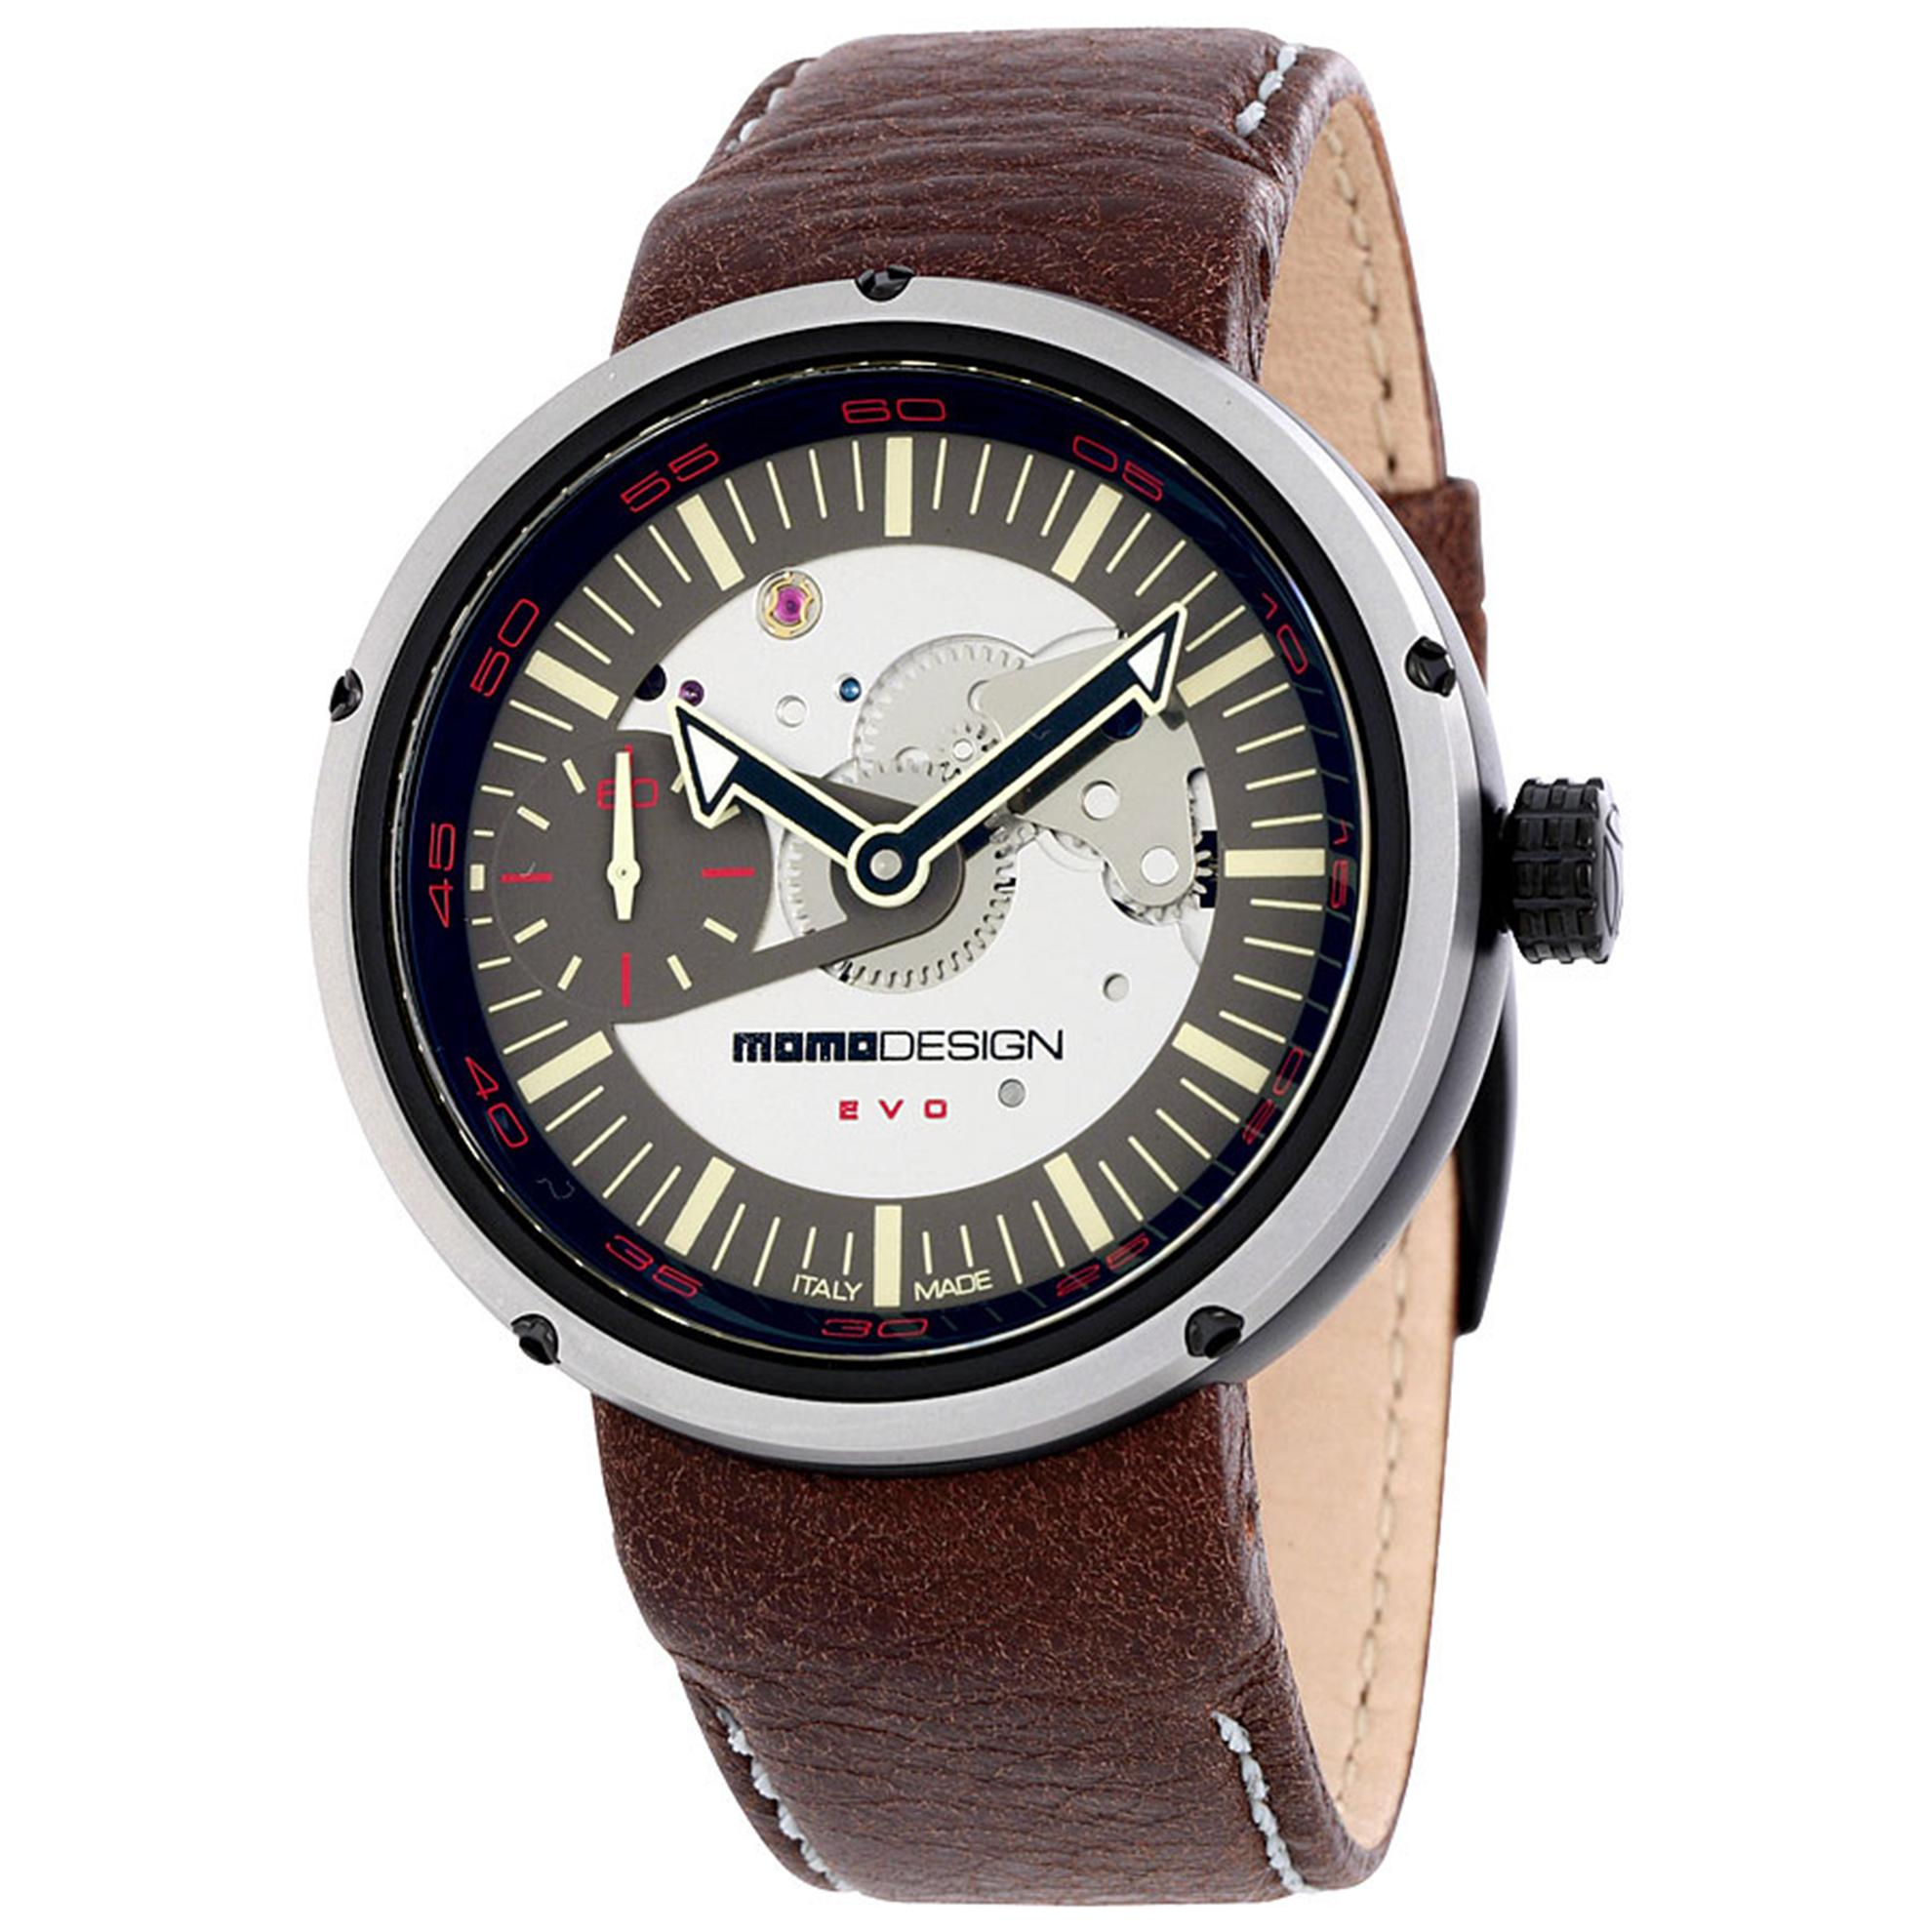 MOMO Design 1010BS-42 MOMO Design Limited Edition Evo Mechanical Automatic Tan Dial Brown Leather Strap